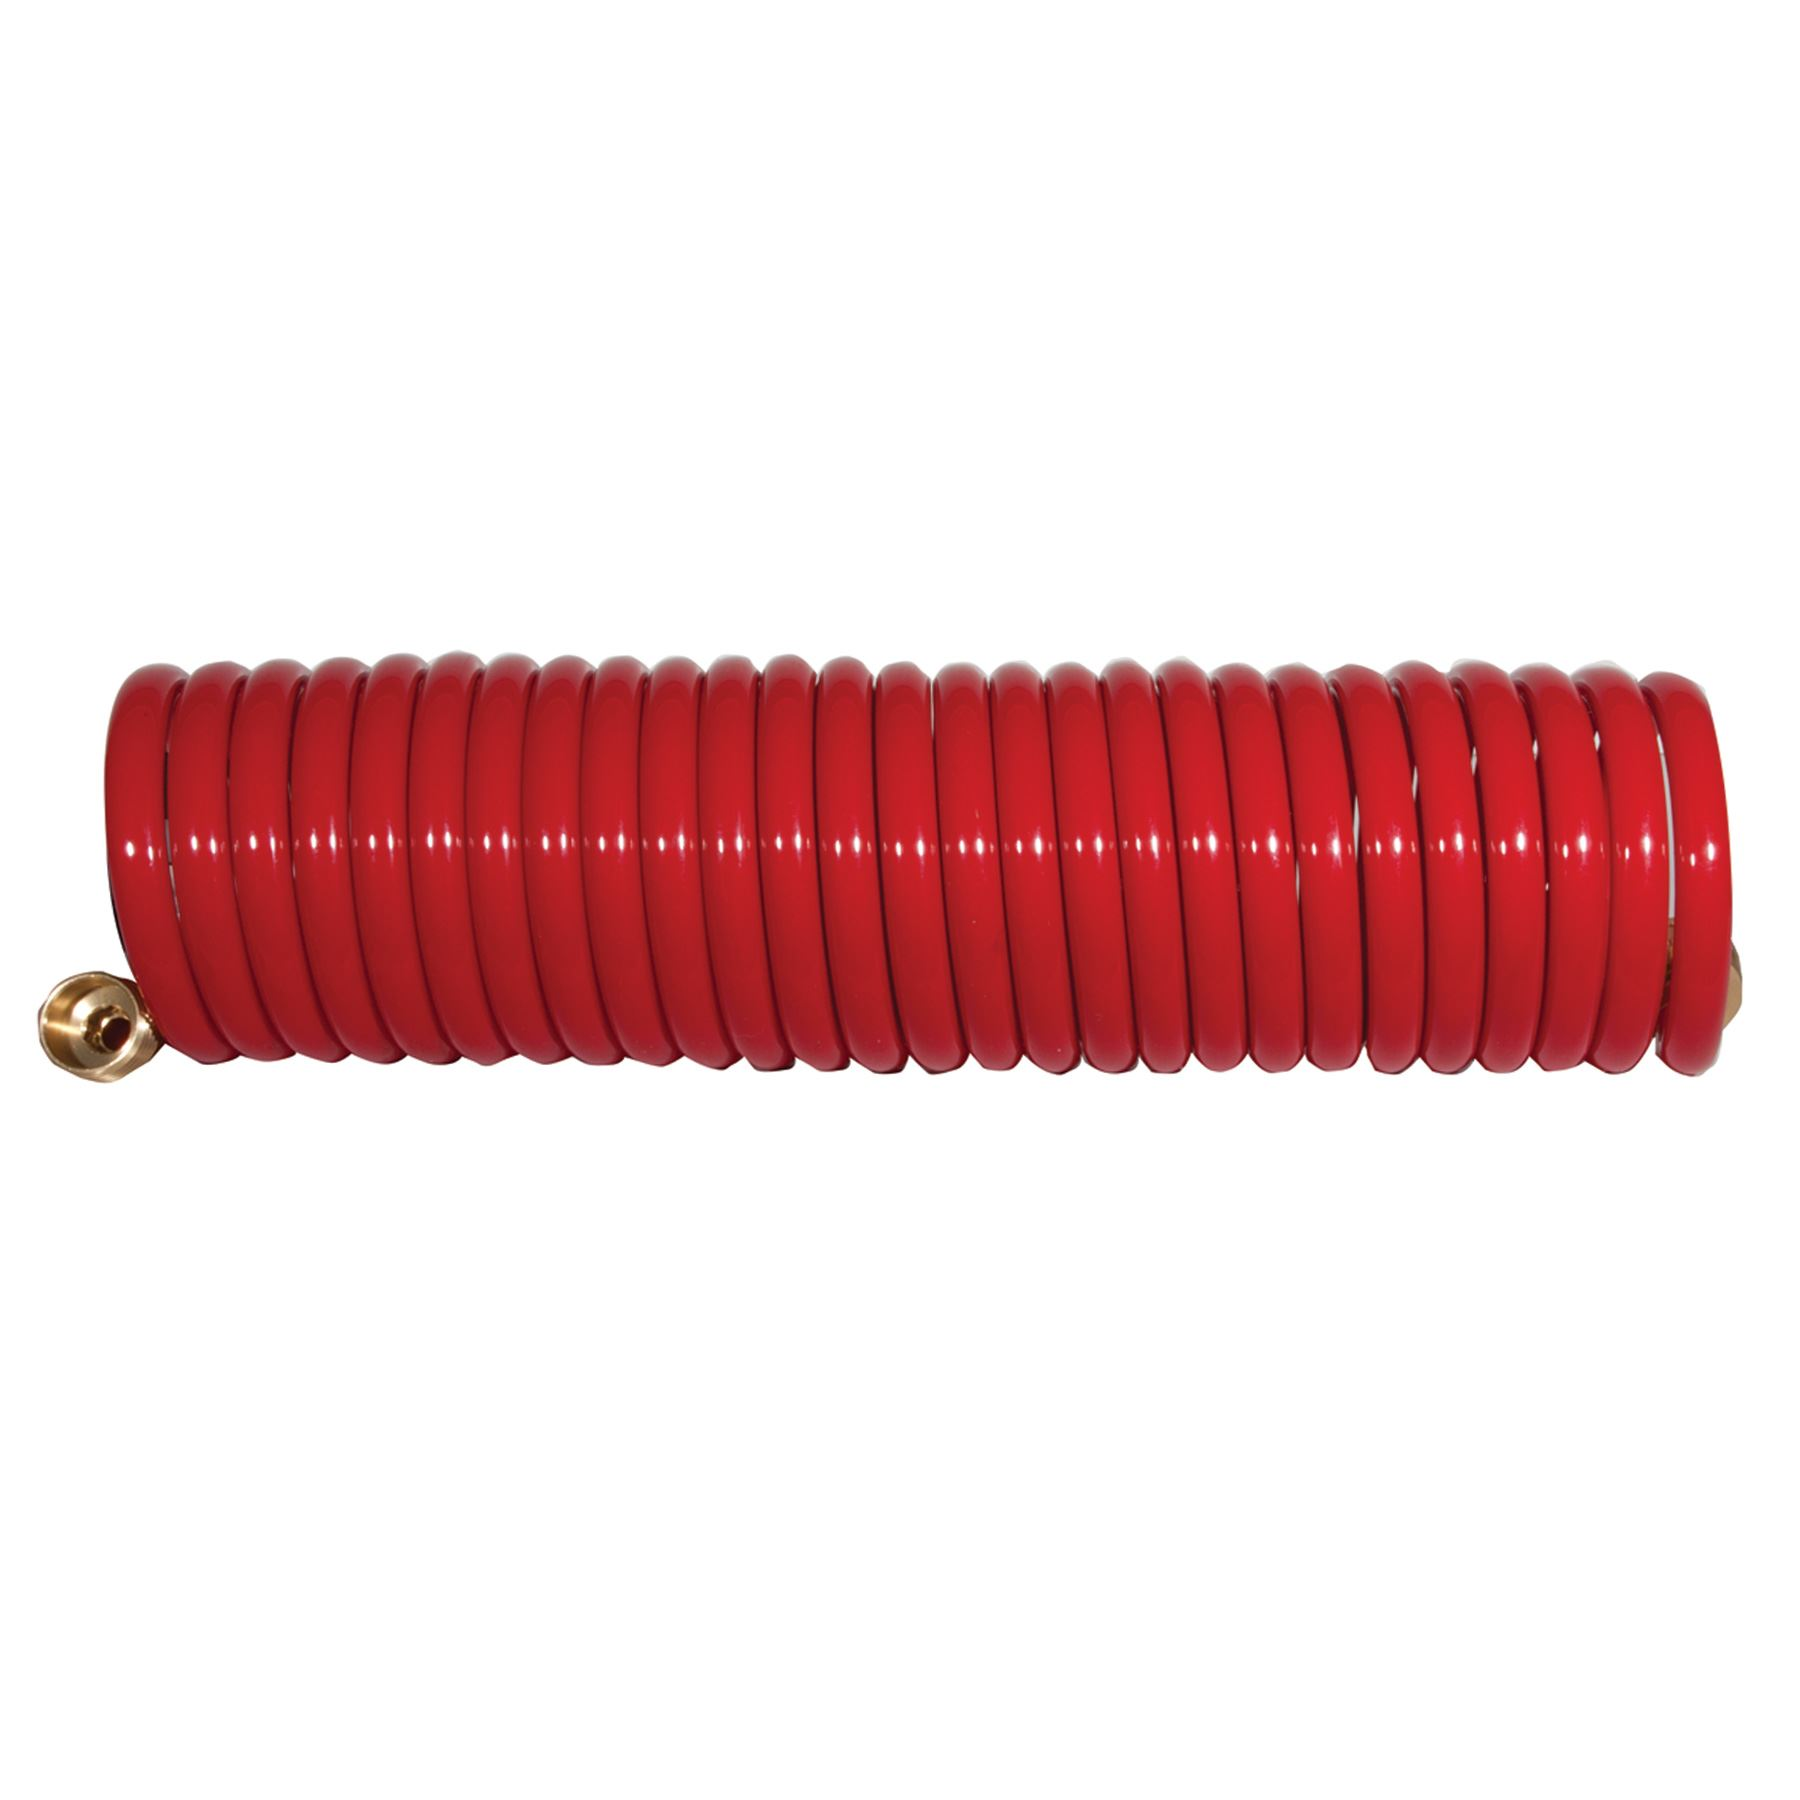 "25' Red 1/2"" Coil Hose"